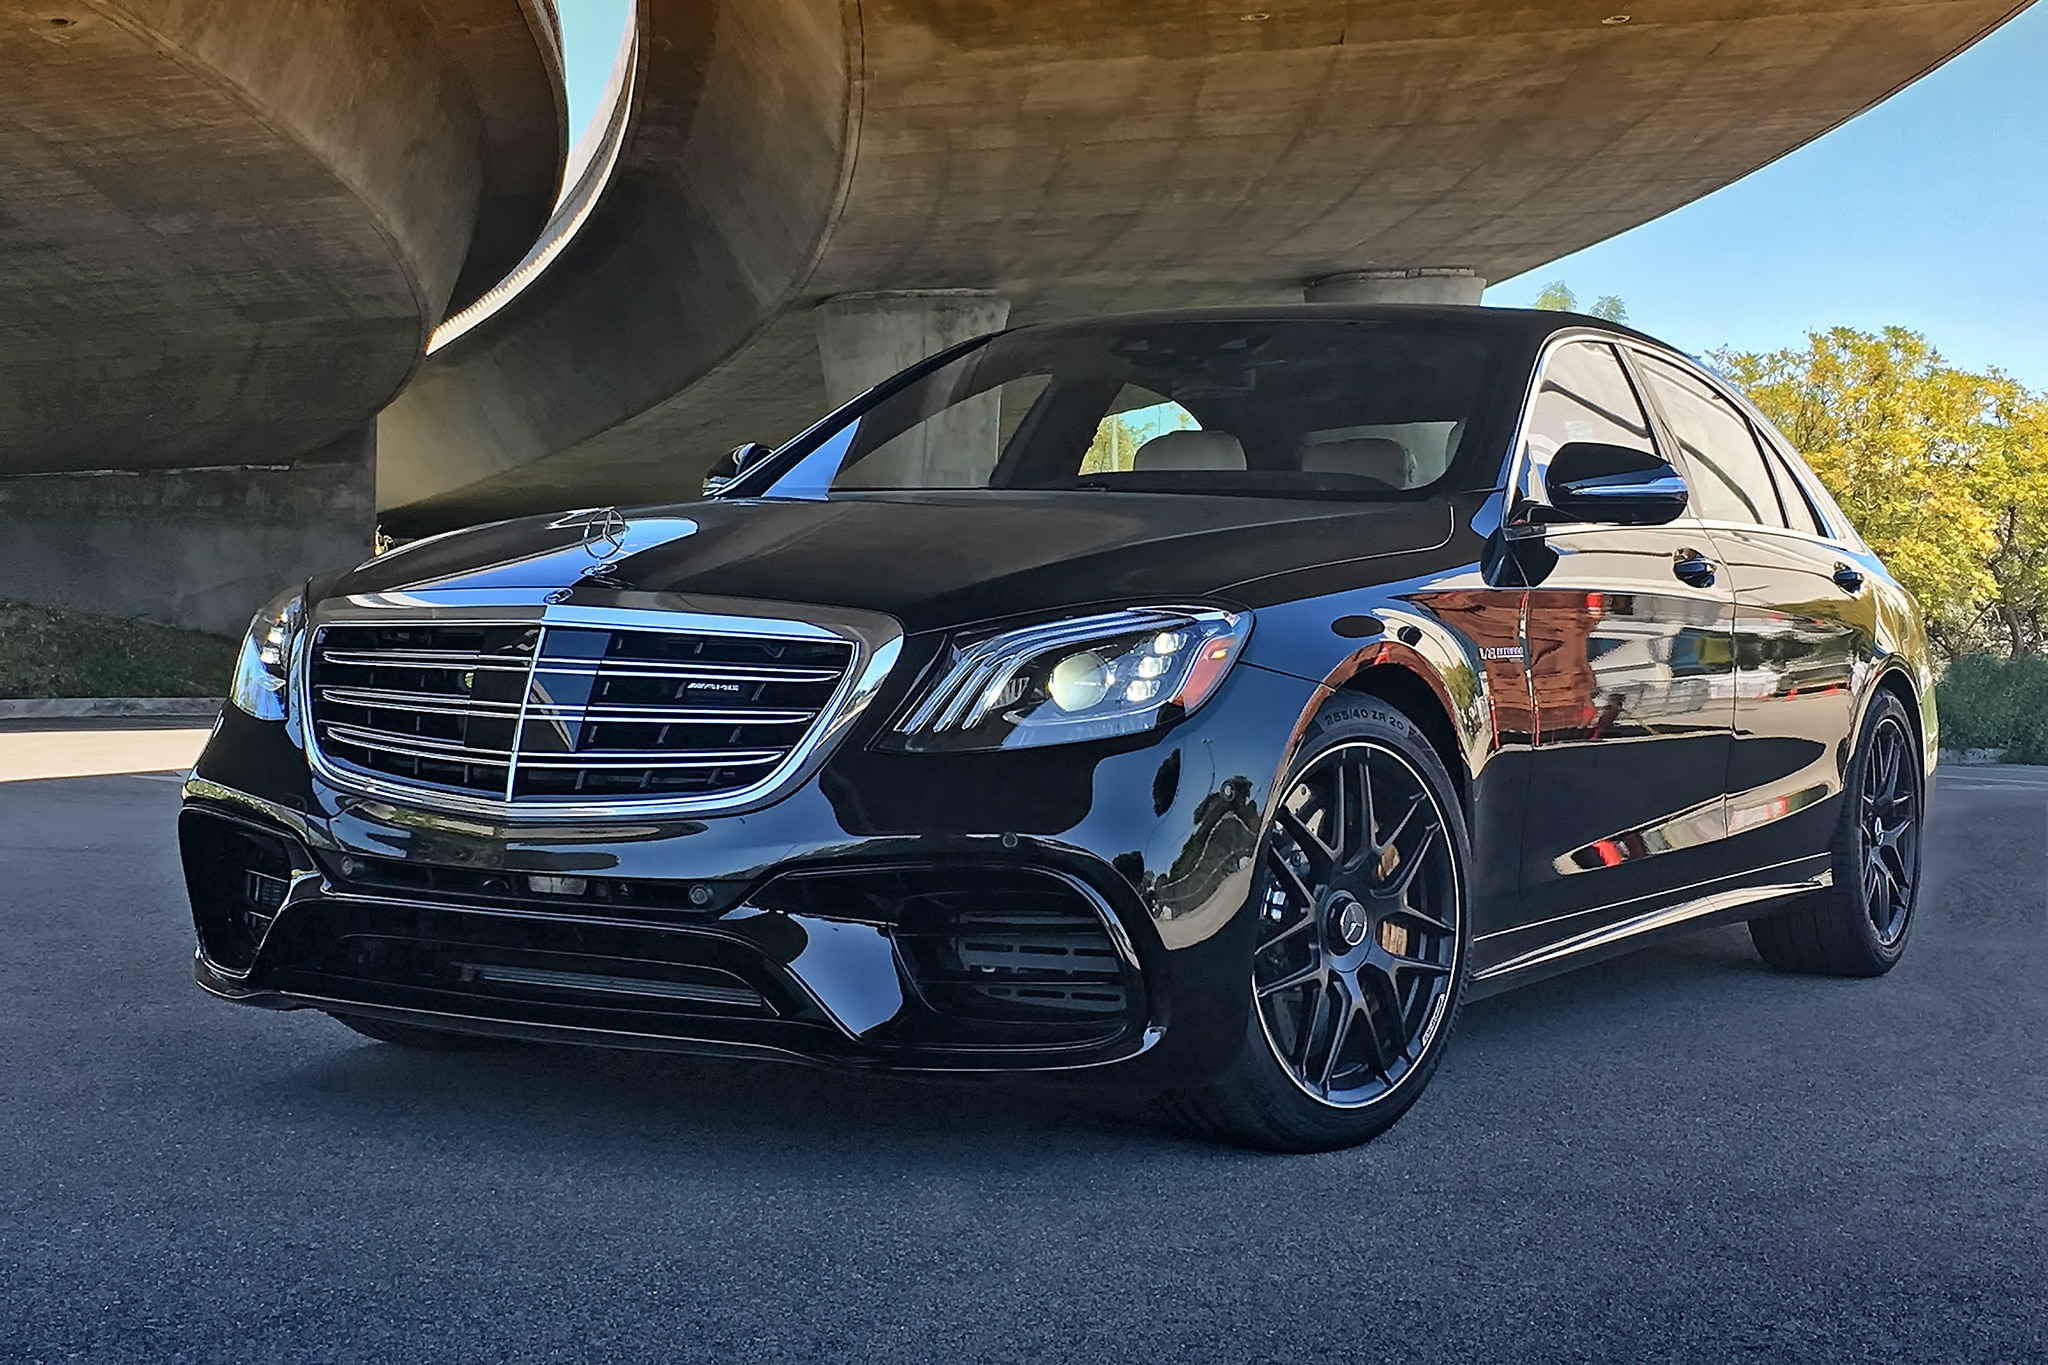 2019 mercedes amg s63 sedan review the best period. Black Bedroom Furniture Sets. Home Design Ideas